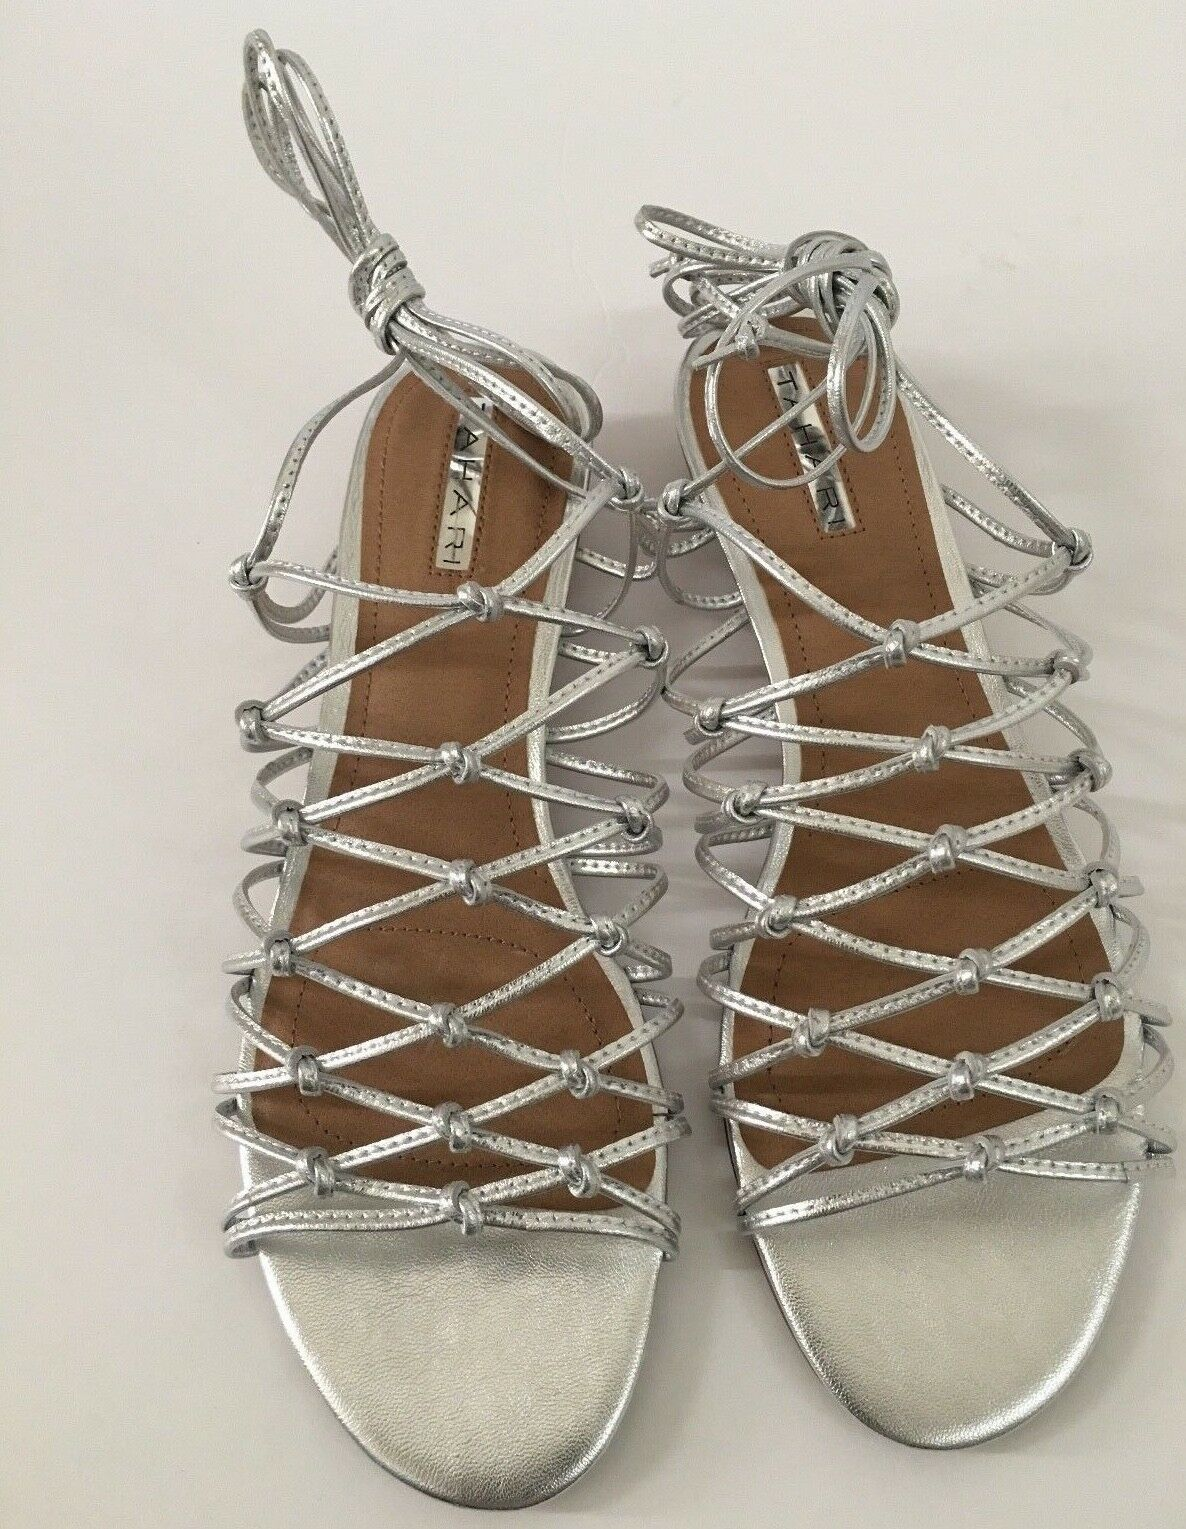 Tahari Women's shoes Size 9 M Metallic Leather Cage Sihlouette Wedge Heel New